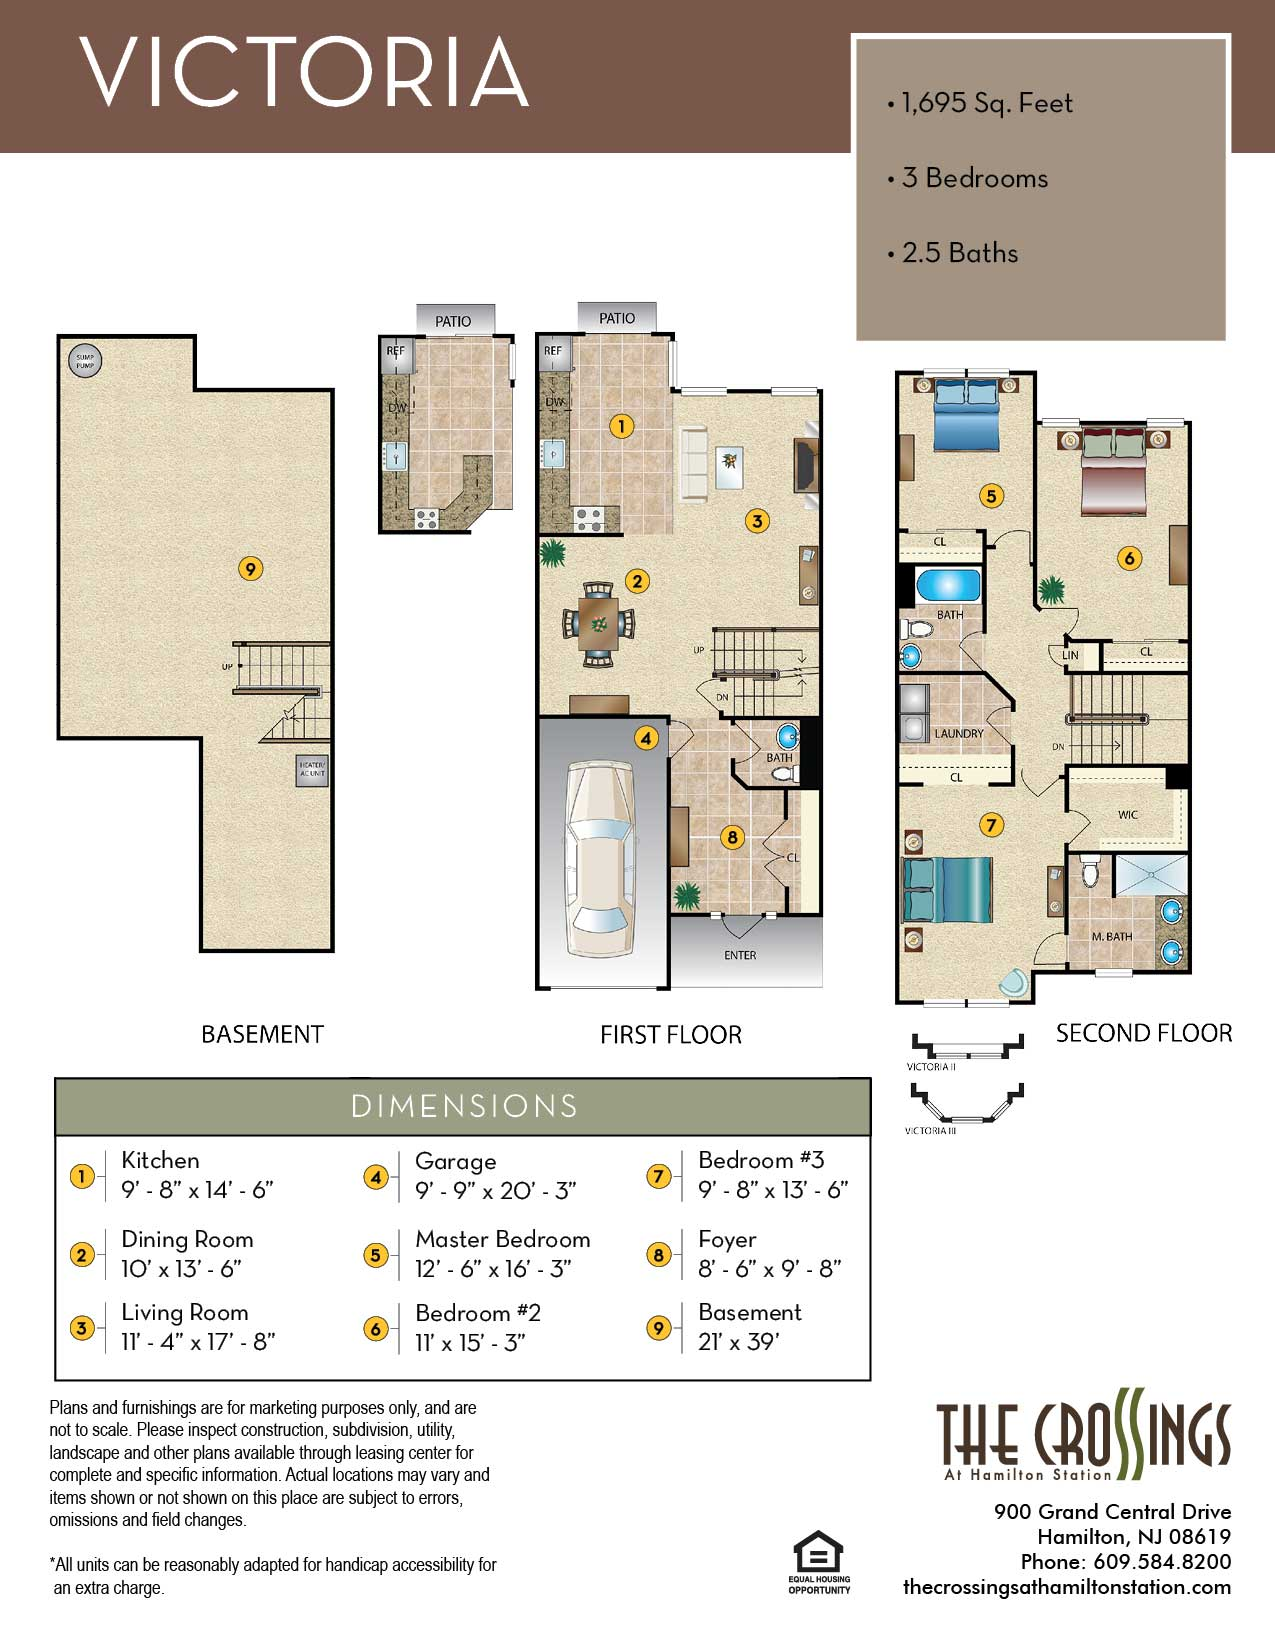 The Crossings at Hamilton Station Apartment Floor Plan Victoria